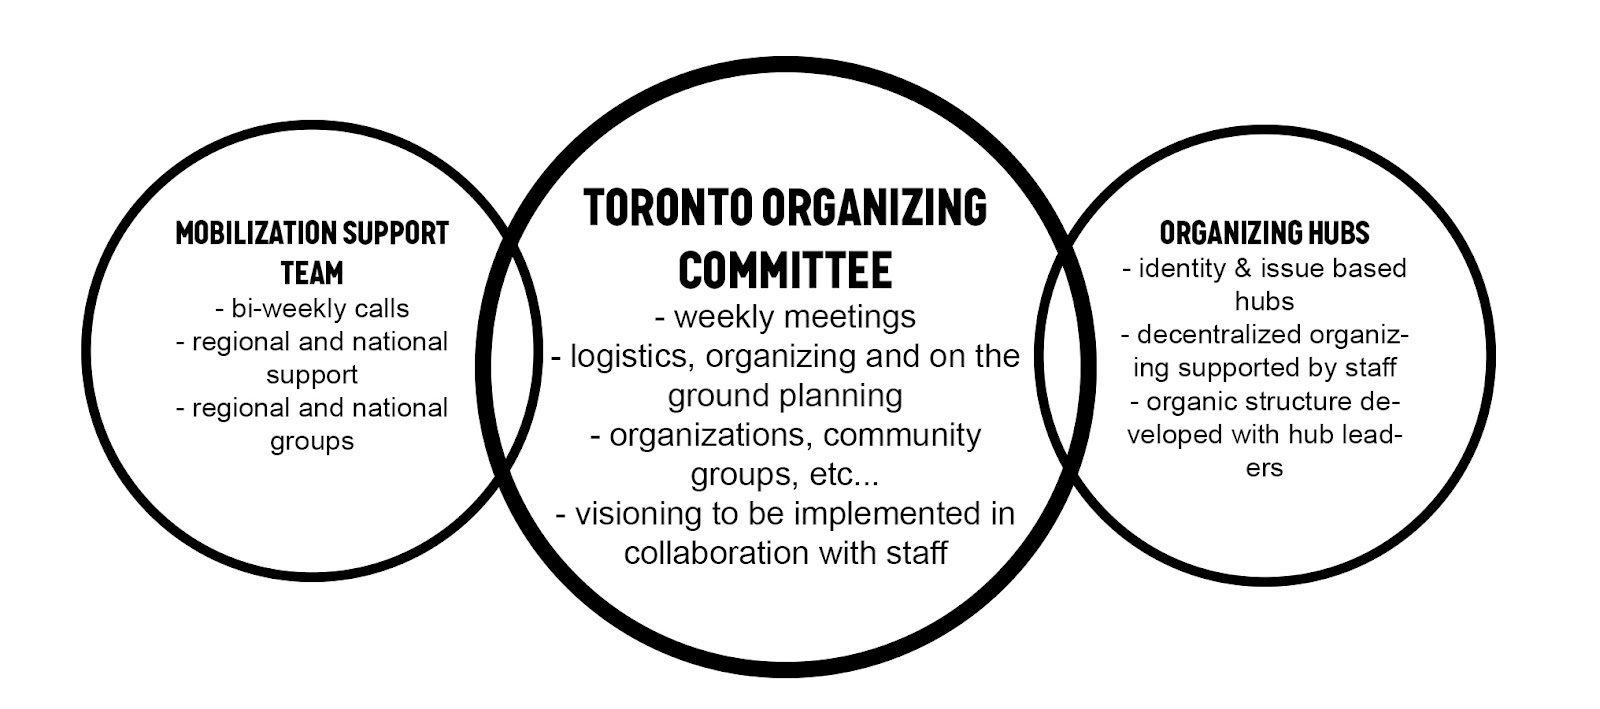 The March for Jobs, Justice & Climate Action will be organized with 3 primary organizing structures. The central hub will be the Toronto Organizing Committee with support and intersection from a national Mobilization Support Team & a series of Organizing Hubs. There is also a team of staff and interns from 350.org that will be working to coordinate the organizing committee and implement the organizing plan.